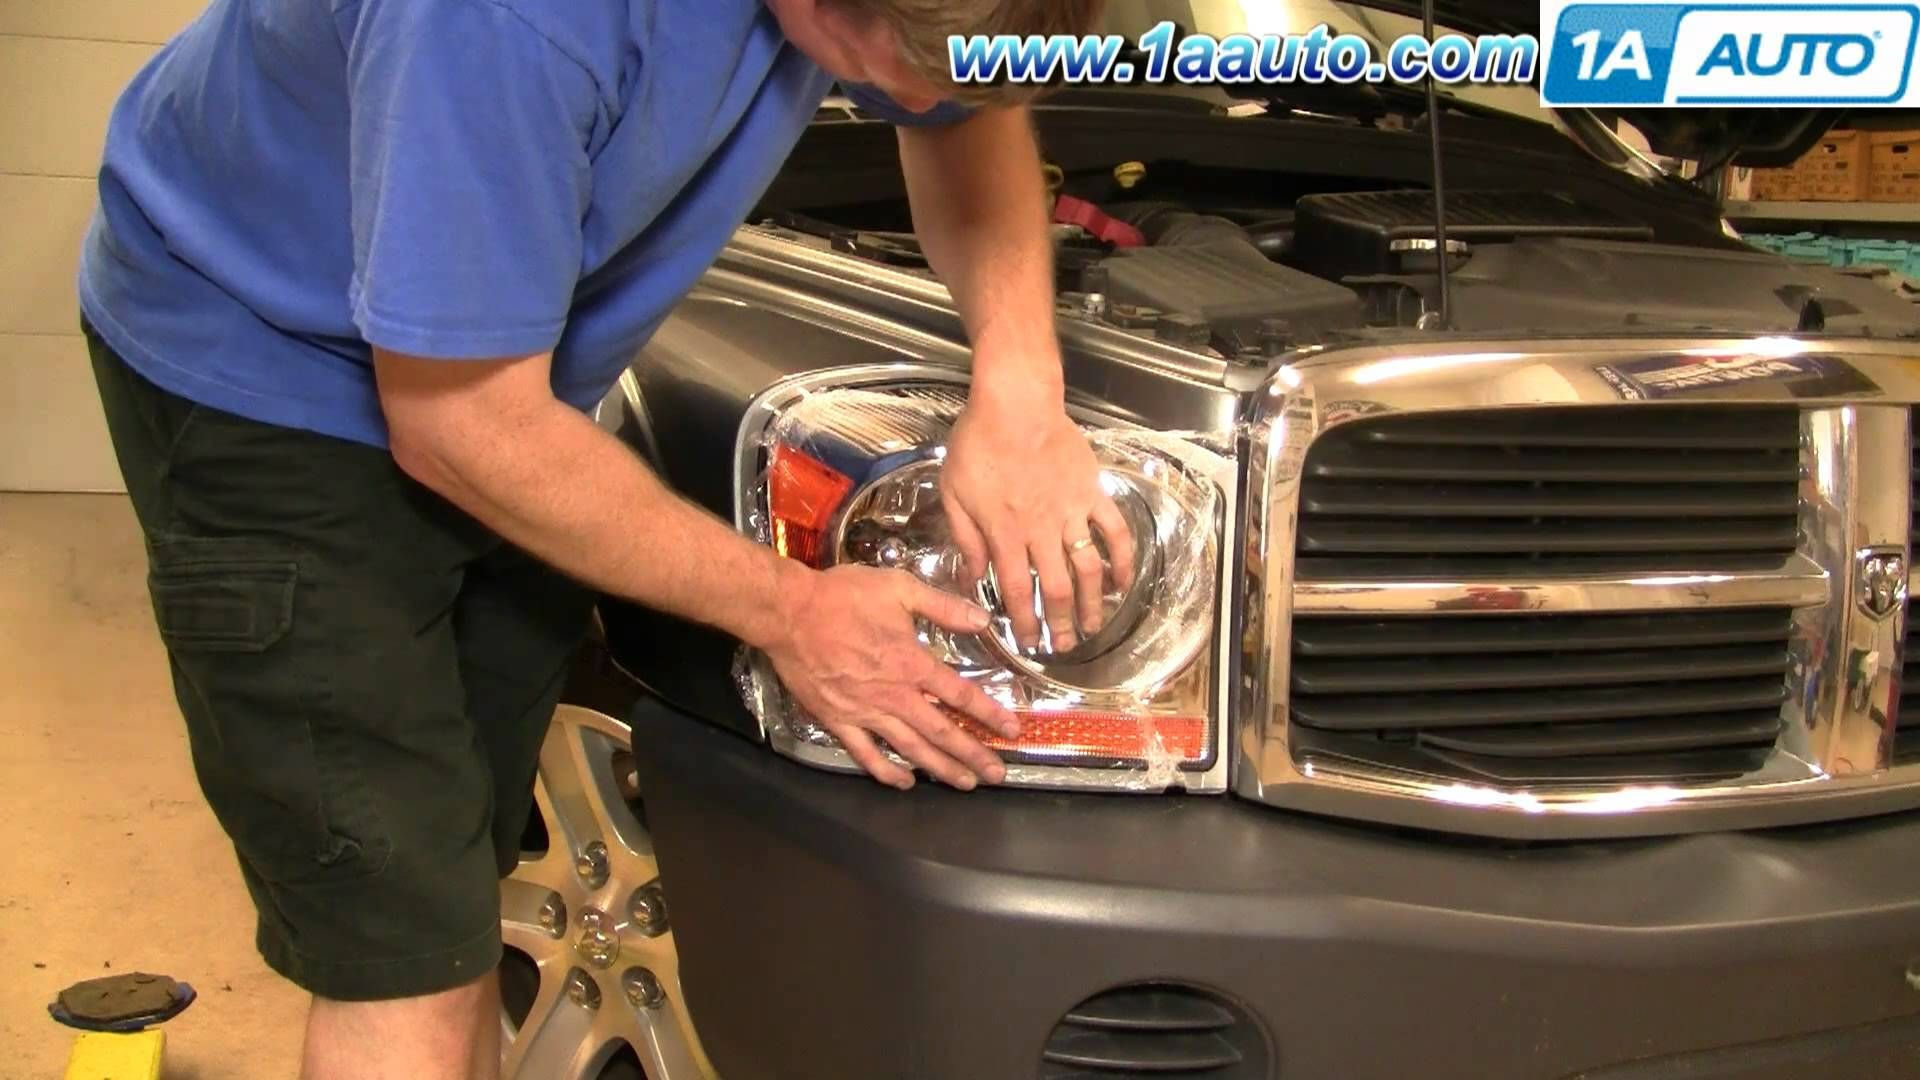 How To Install Replace Headlight And Bulb Dodge Durango 04 06 1aauto Peoria